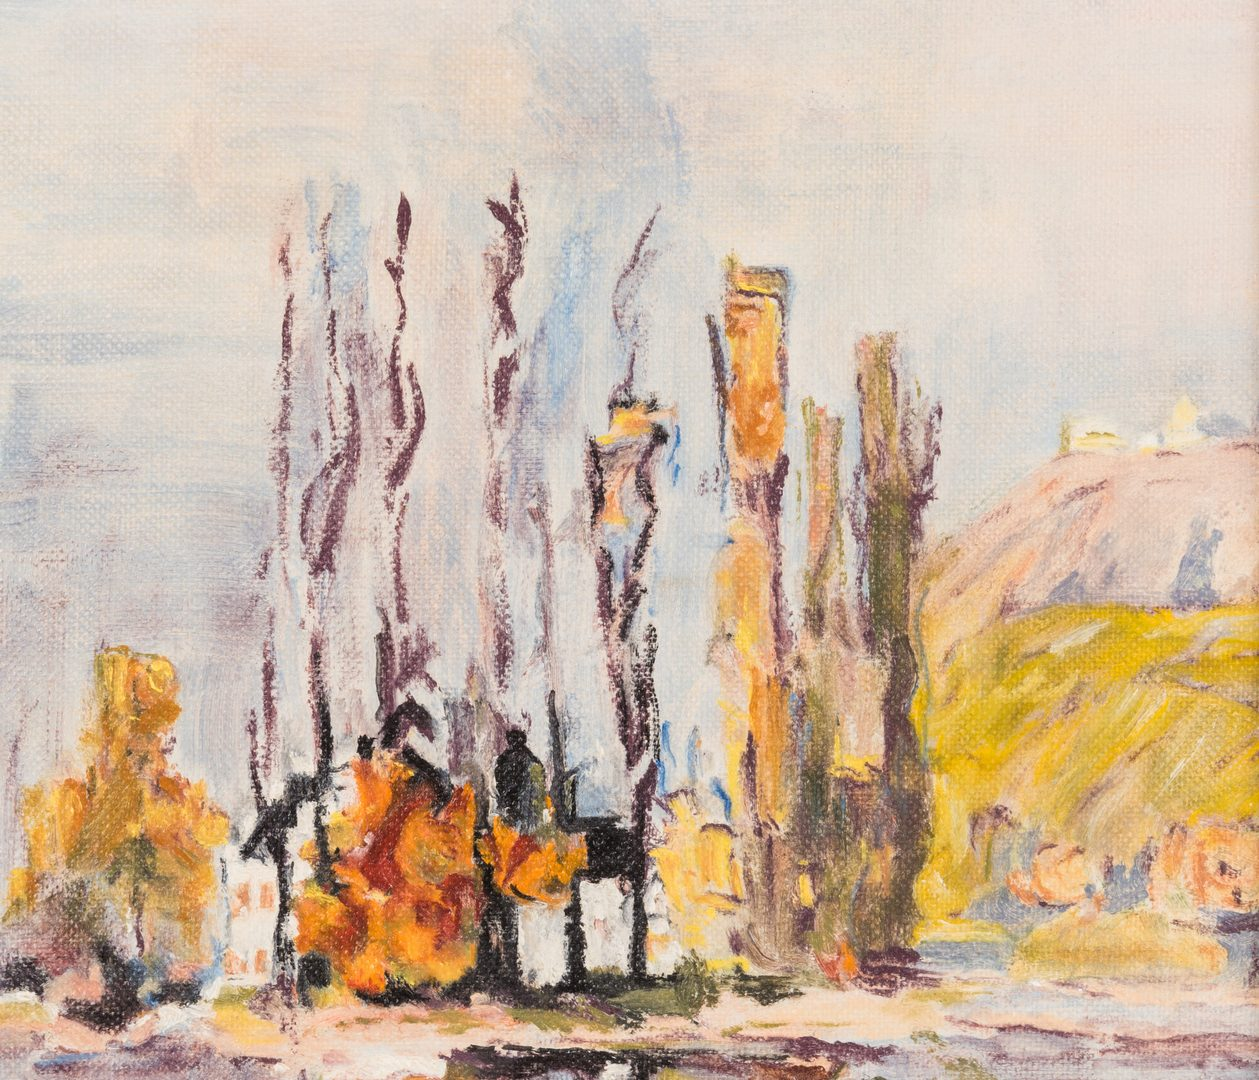 Lot 493: 3 Landscapes: Jerry Van Megert and Kit Boberta, Burning House